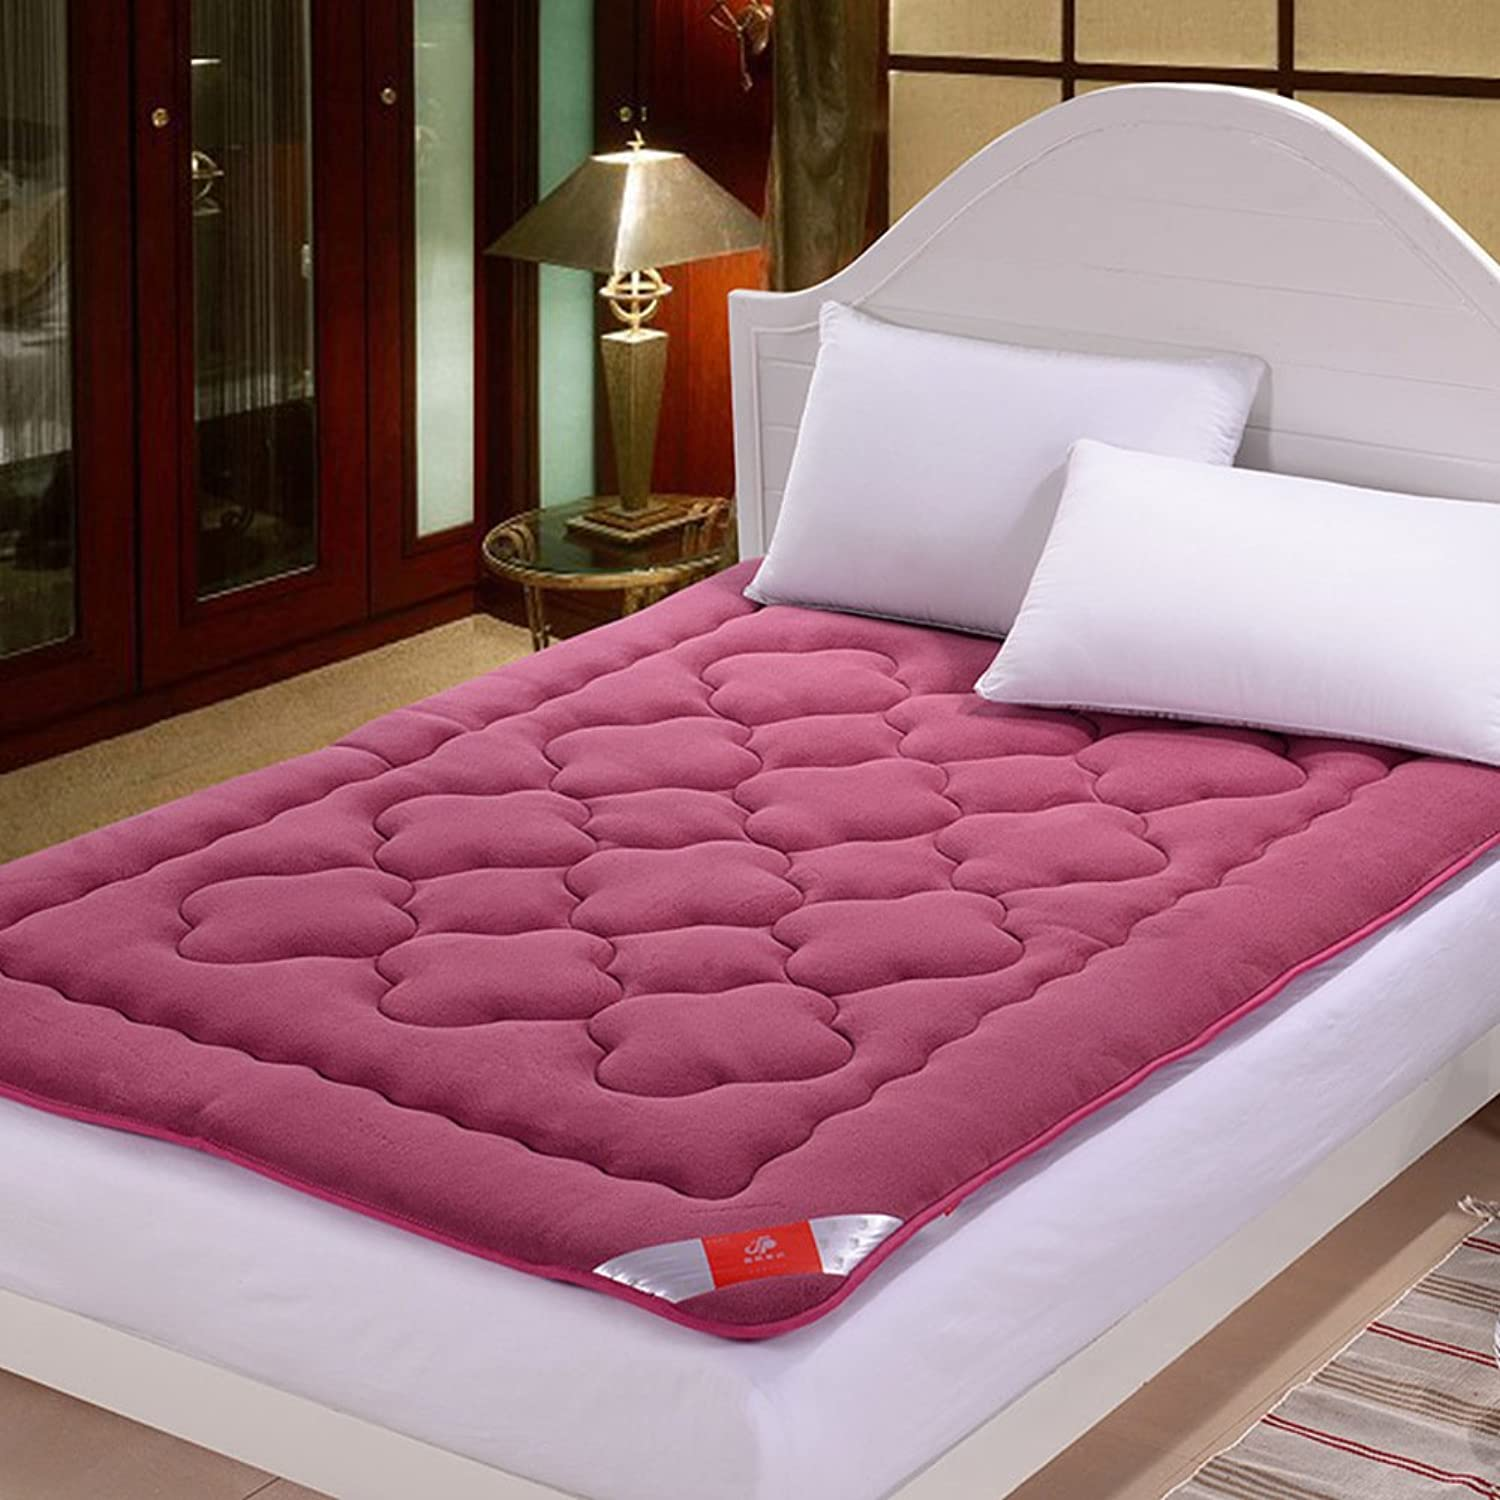 Coral Velvet Thickening Mattress,Mattress,Tatami Single Double Soft Mattress Mat-A 135x200cm(53x79inch)